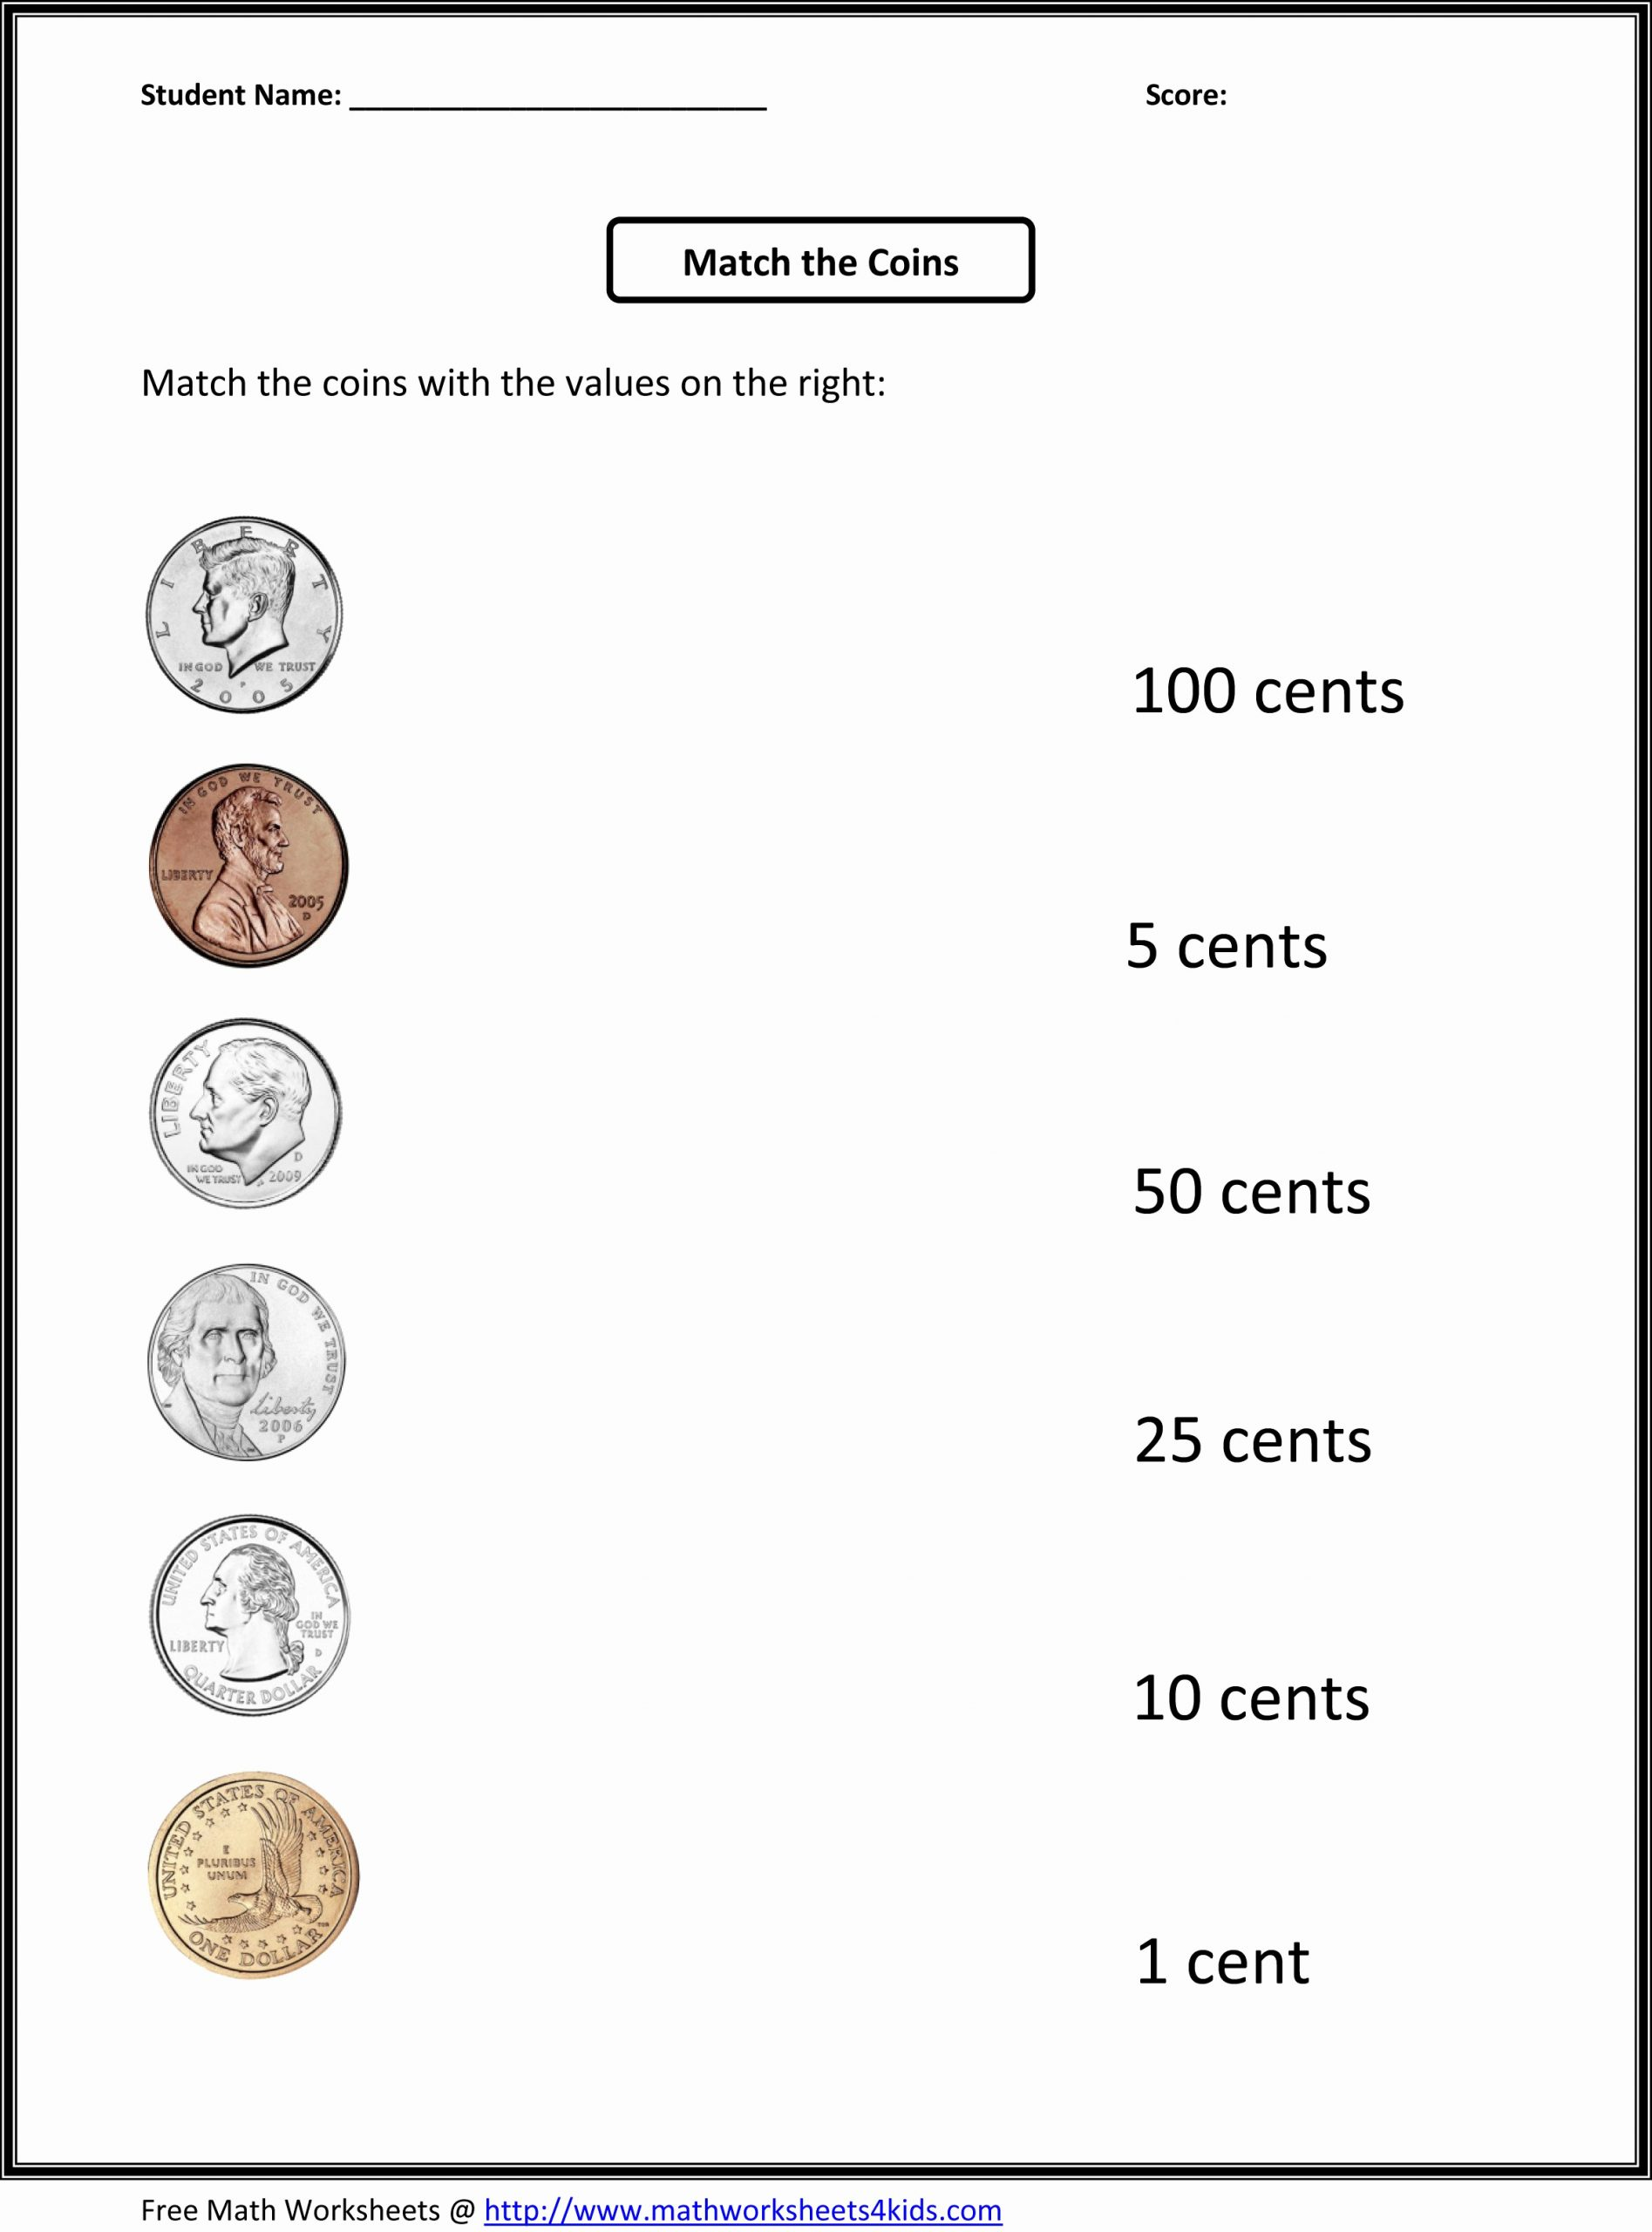 Counting Coins Worksheets First Grade Lovely Counting Coins Value Us 1 Dollar Worksheets Printable